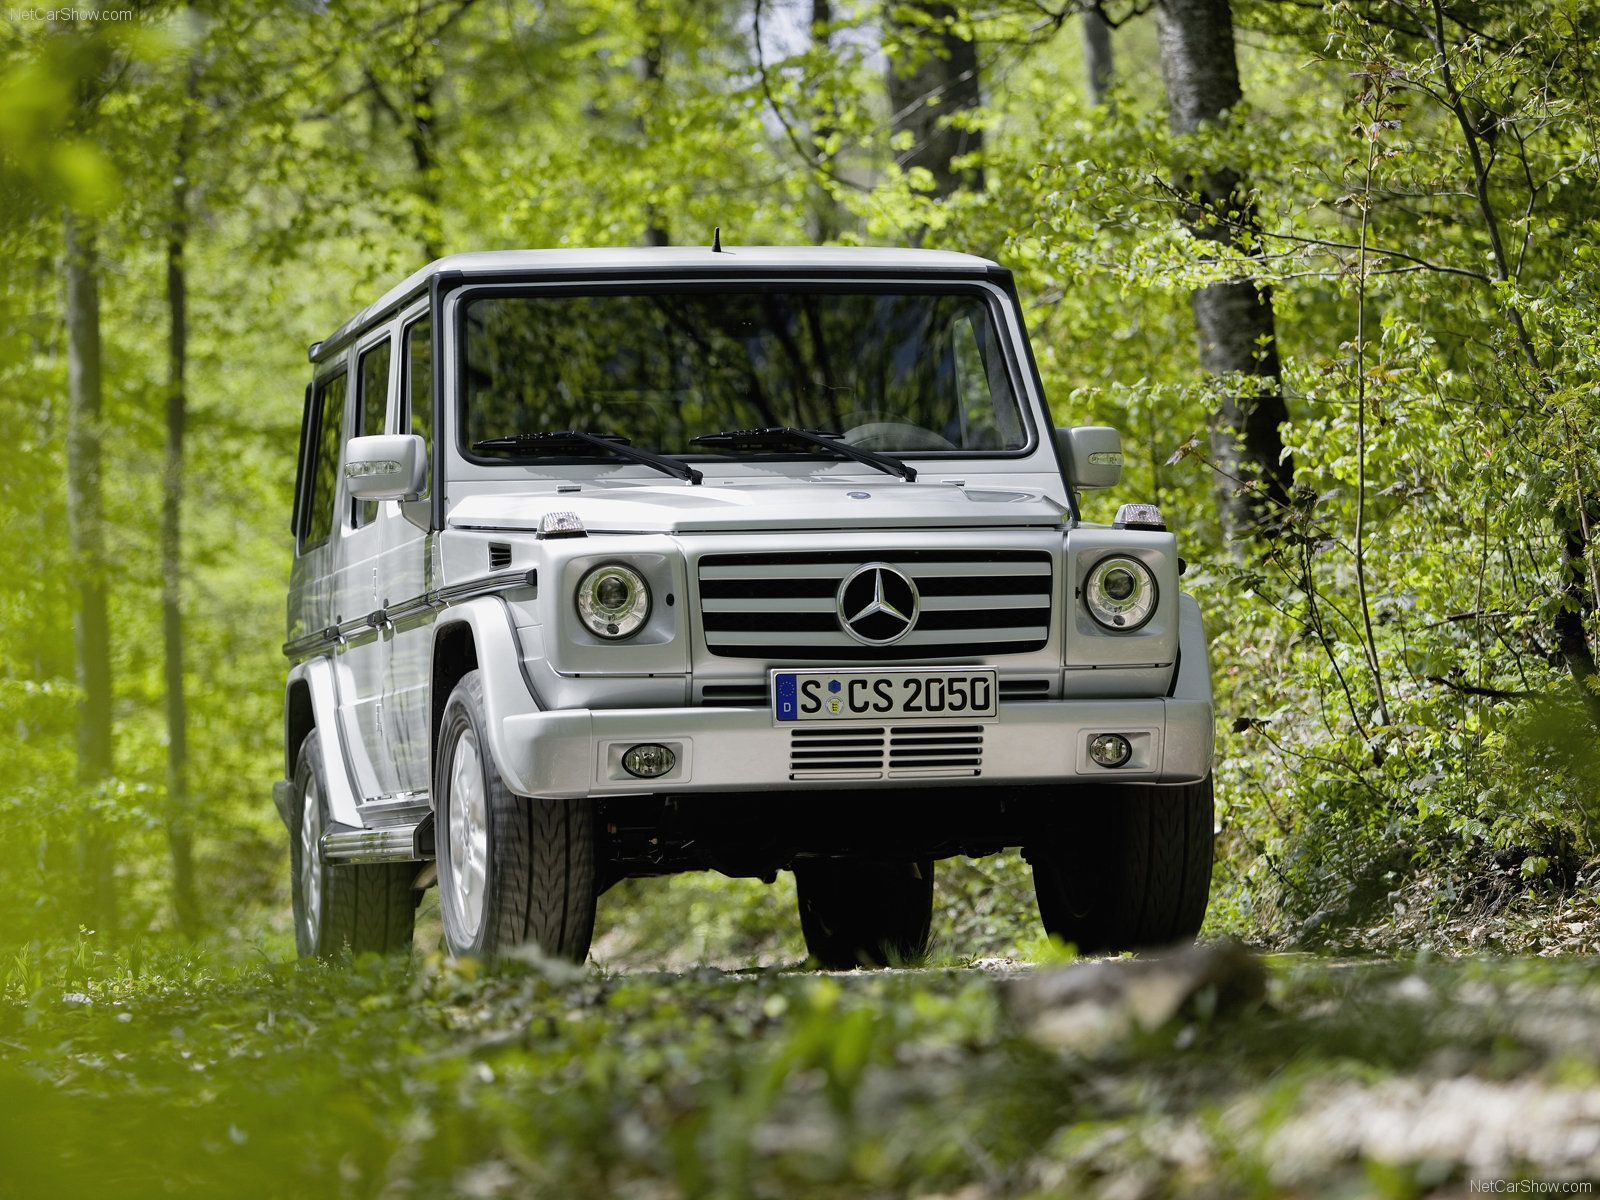 Mercedes Benz G Class Wallpaper Full Hd Wallpapers Hummer